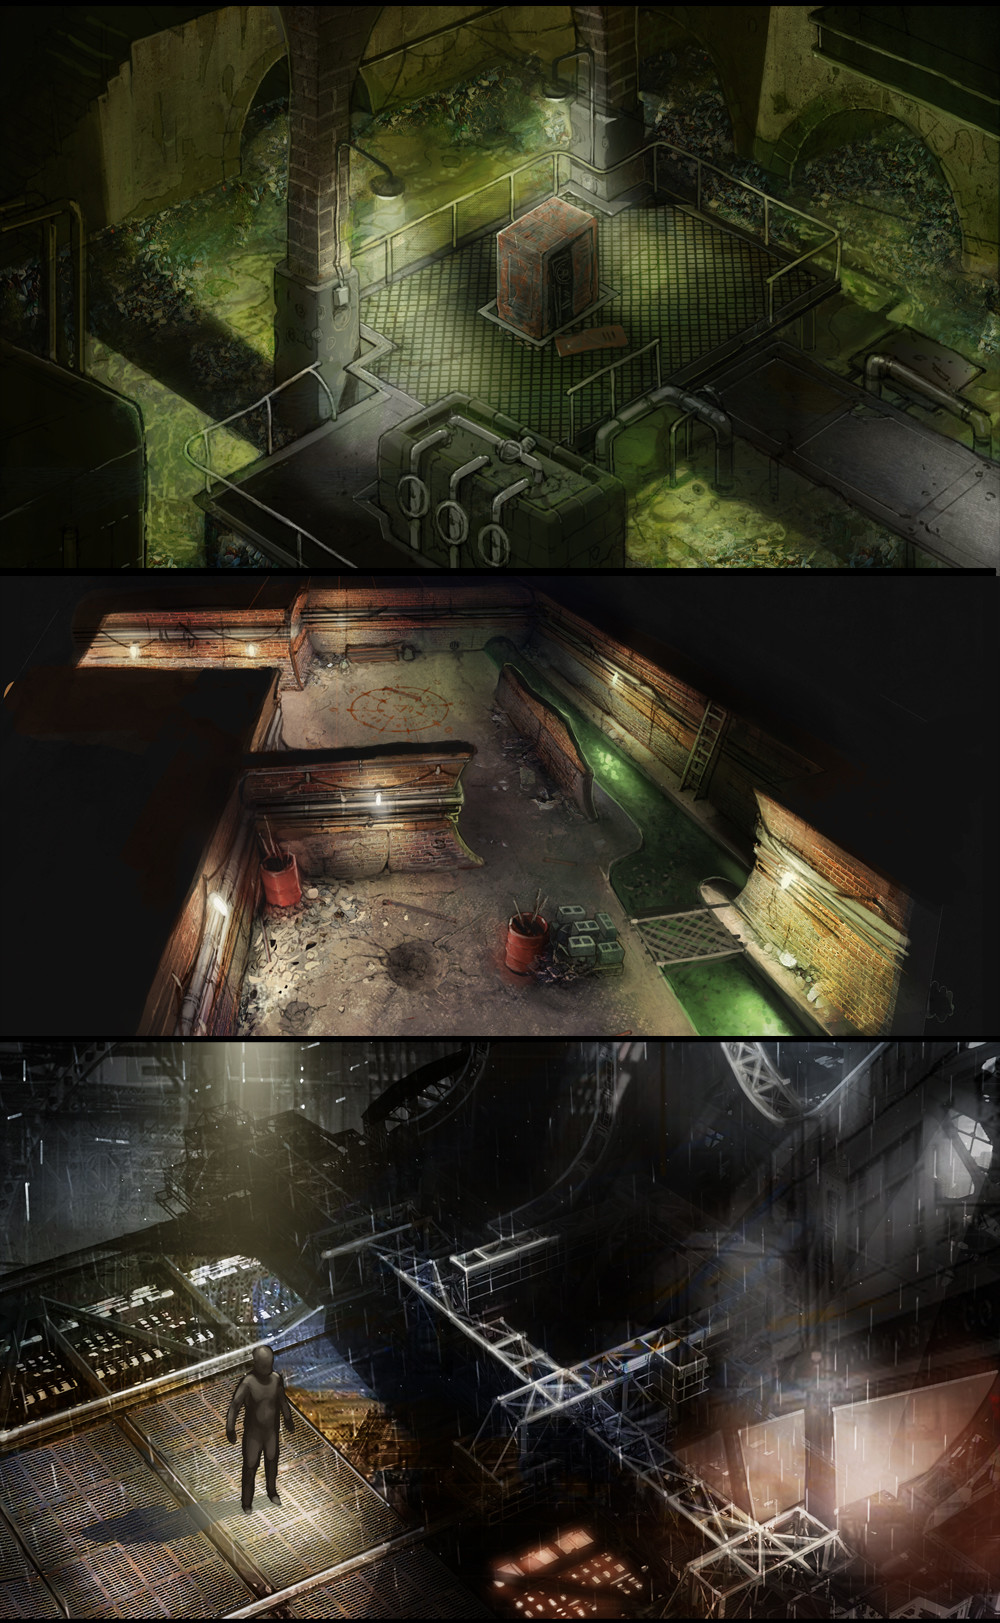 West clendinning sro environments concepts